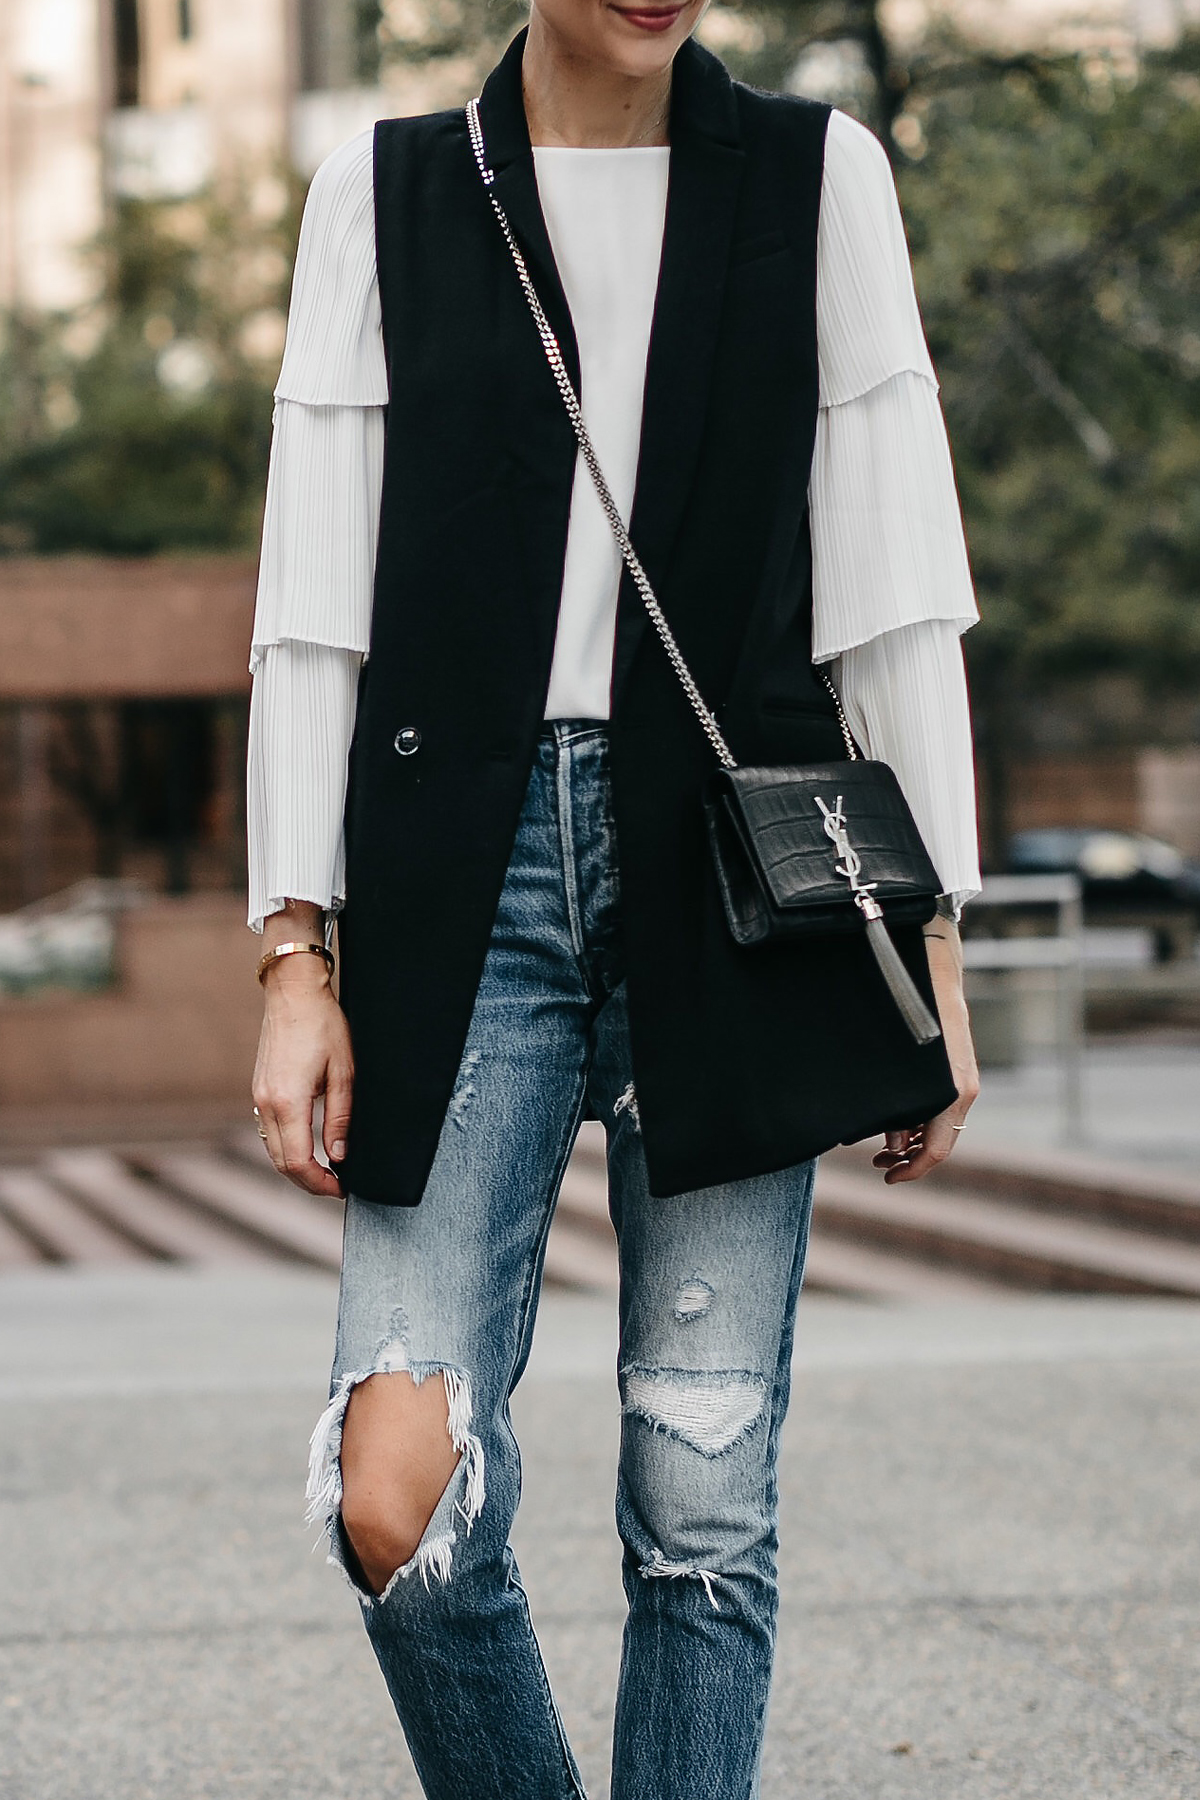 Long Black Vest White Pleat Sleeve Top Denim Ripped Jeans Saint Laurent Crossbody Fashion Jackson Dallas Blogger Fashion Blogger Street Style